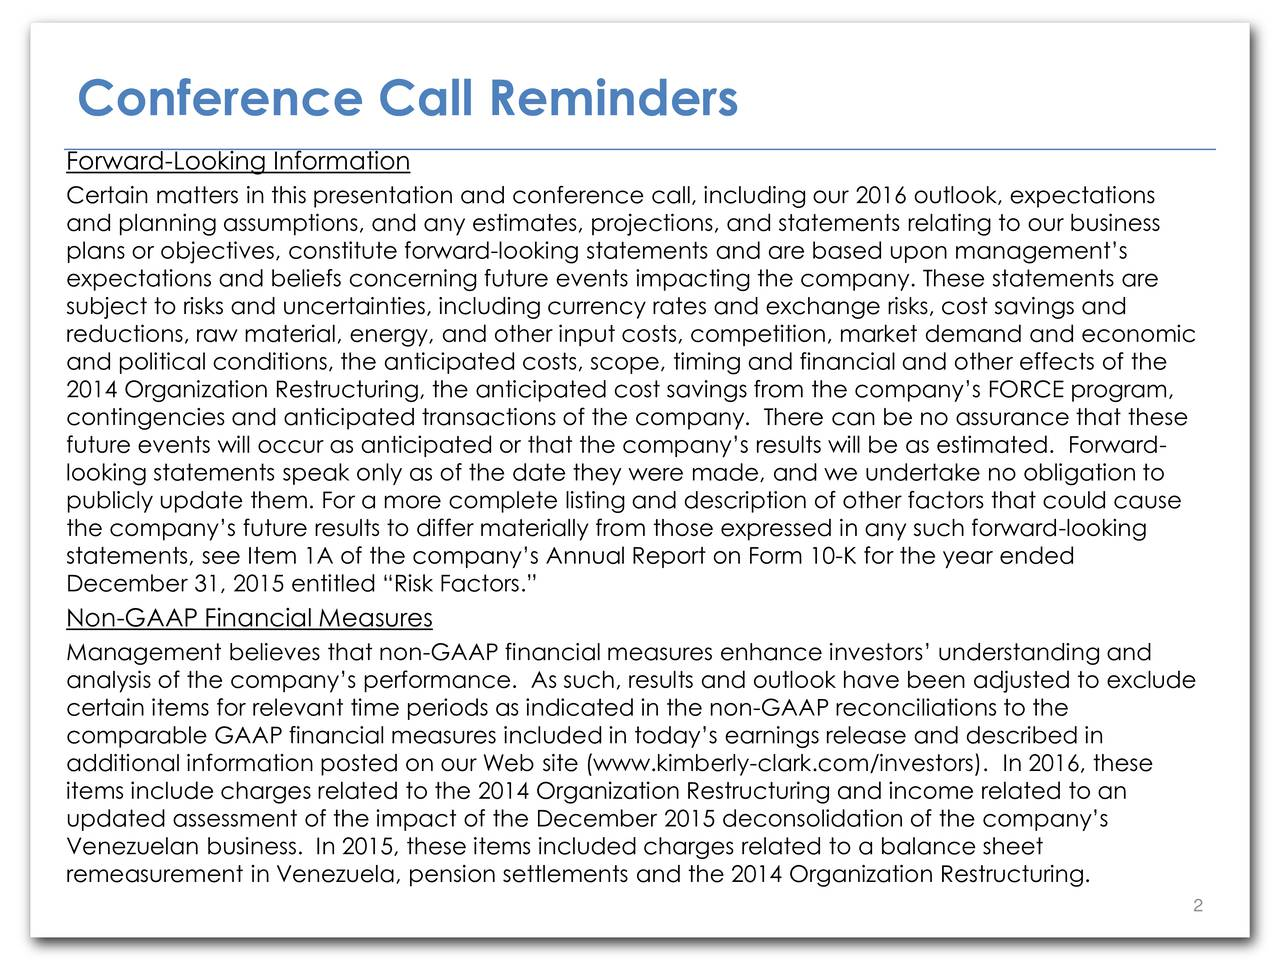 Forward-Looking Information Certain matters in this presentation and conference call, including our 2016 outlook, expectations and planning assumptions, and any estimates, projections, and statements relating to our business plans or objectives, constitute forward-looking statements and are based upon managements expectations and beliefs concerning future events impacting the company. These statements are subject to risks and uncertainties, including currency rates and exchange risks, cost savings and reductions, raw material, energy, and other input costs, competition, market demand and economic and political conditions, the anticipated costs, scope, timing and financial and other effects of the 2014 Organization Restructuring, the anticipated cost savings from the companys FORCE program, contingencies and anticipated transactions of the company. There can be no assurance that these future events will occur as anticipated or that the companys results will be as estimated. Forward- looking statements speak only as of the date they were made, and we undertake no obligation to publicly update them. For a more complete listing and description of other factors that could cause the companys future results to differ materially from those expressed in any such forward-looking statements, see Item 1A of the companys Annual Report on Form 10-K for the year ended December 31, 2015 entitled Risk Factors. Non-GAAP Financial Measures Management believes that non-GAAP financial measures enhance investors understanding and analysis of the companys performance. As such, results and outlook have been adjusted to exclude certain items for relevant time periods as indicated in the non-GAAP reconciliations to the comparable GAAP financial measures included in todays earnings release and described in additional information posted on our Web site (www.kimberly-clark.com/investors). In 2016, these items include charges related to the 2014 Organization Restructuring and income related to a